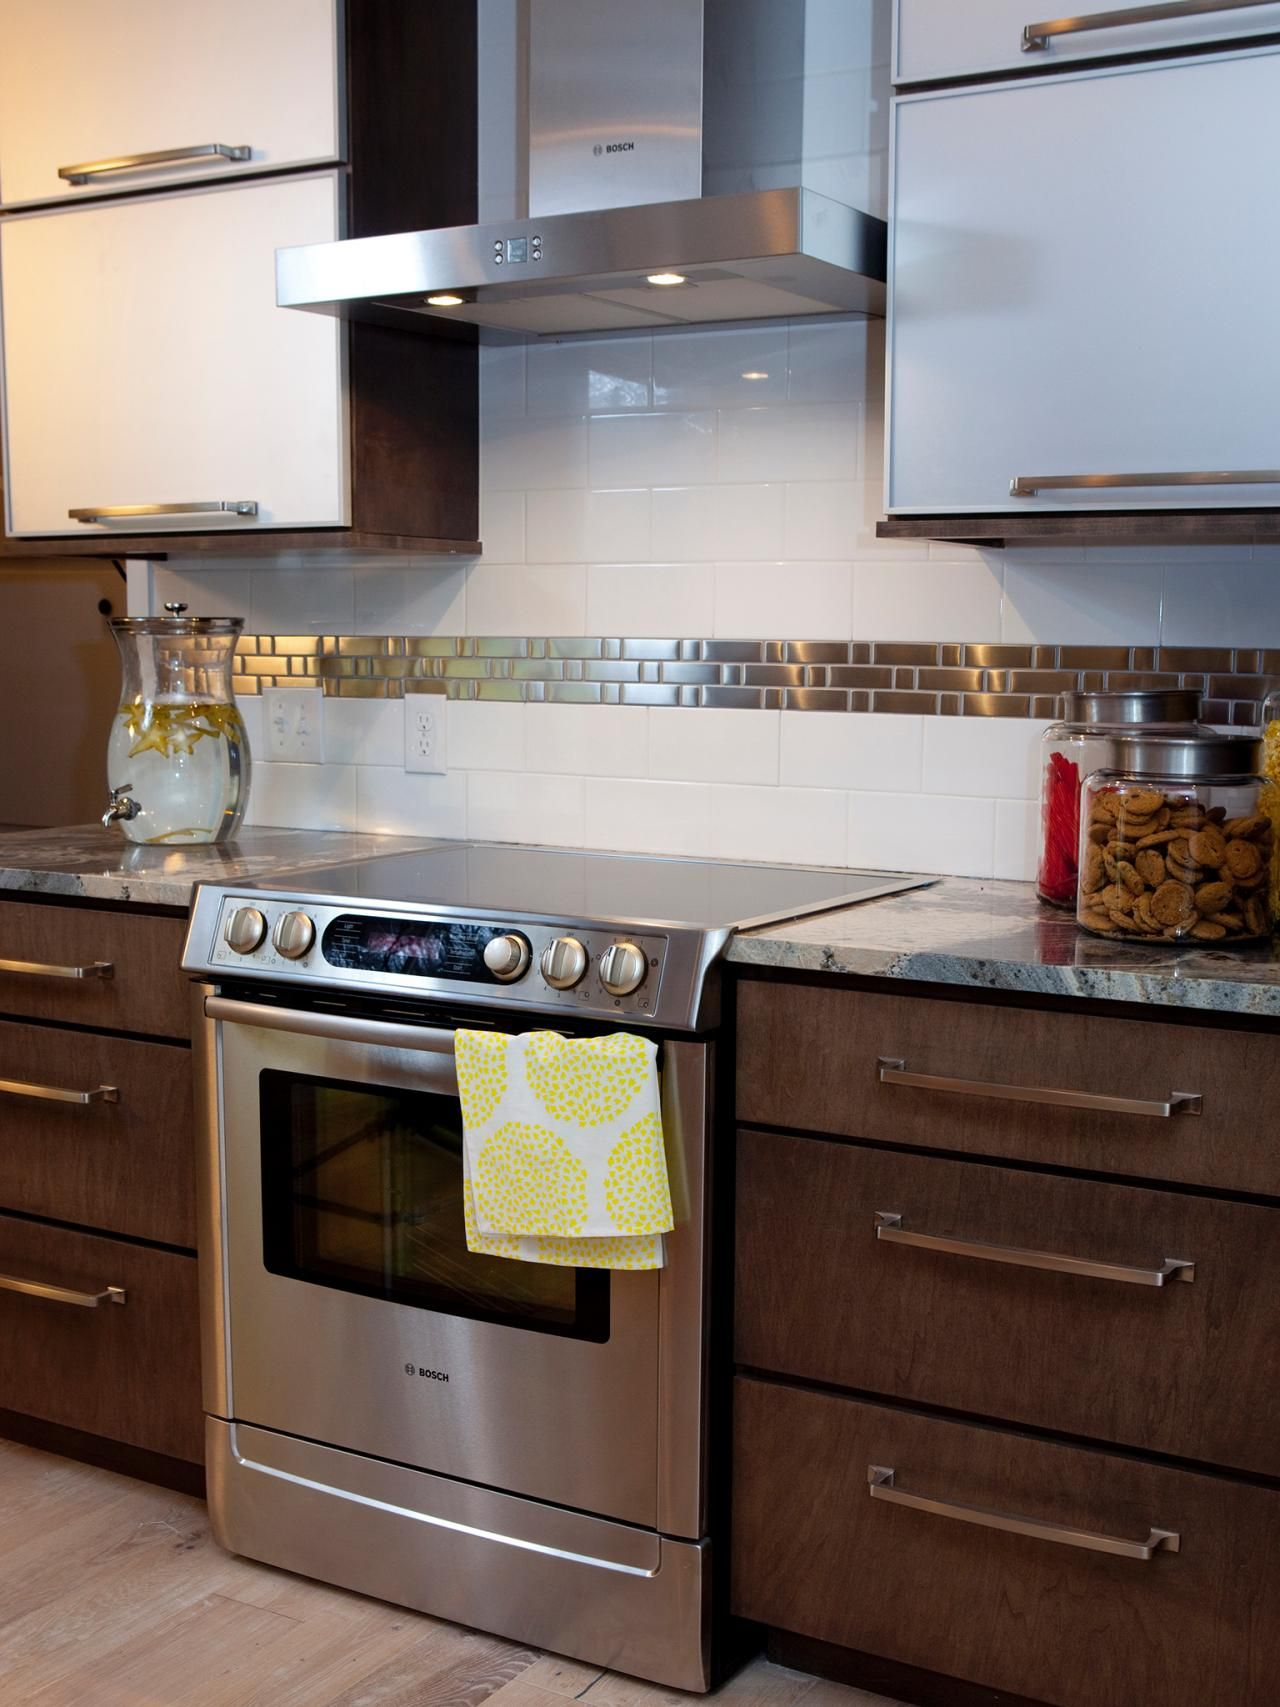 Pictures of Kitchen Backsplash Ideas From | Cocinas, Comedores ...